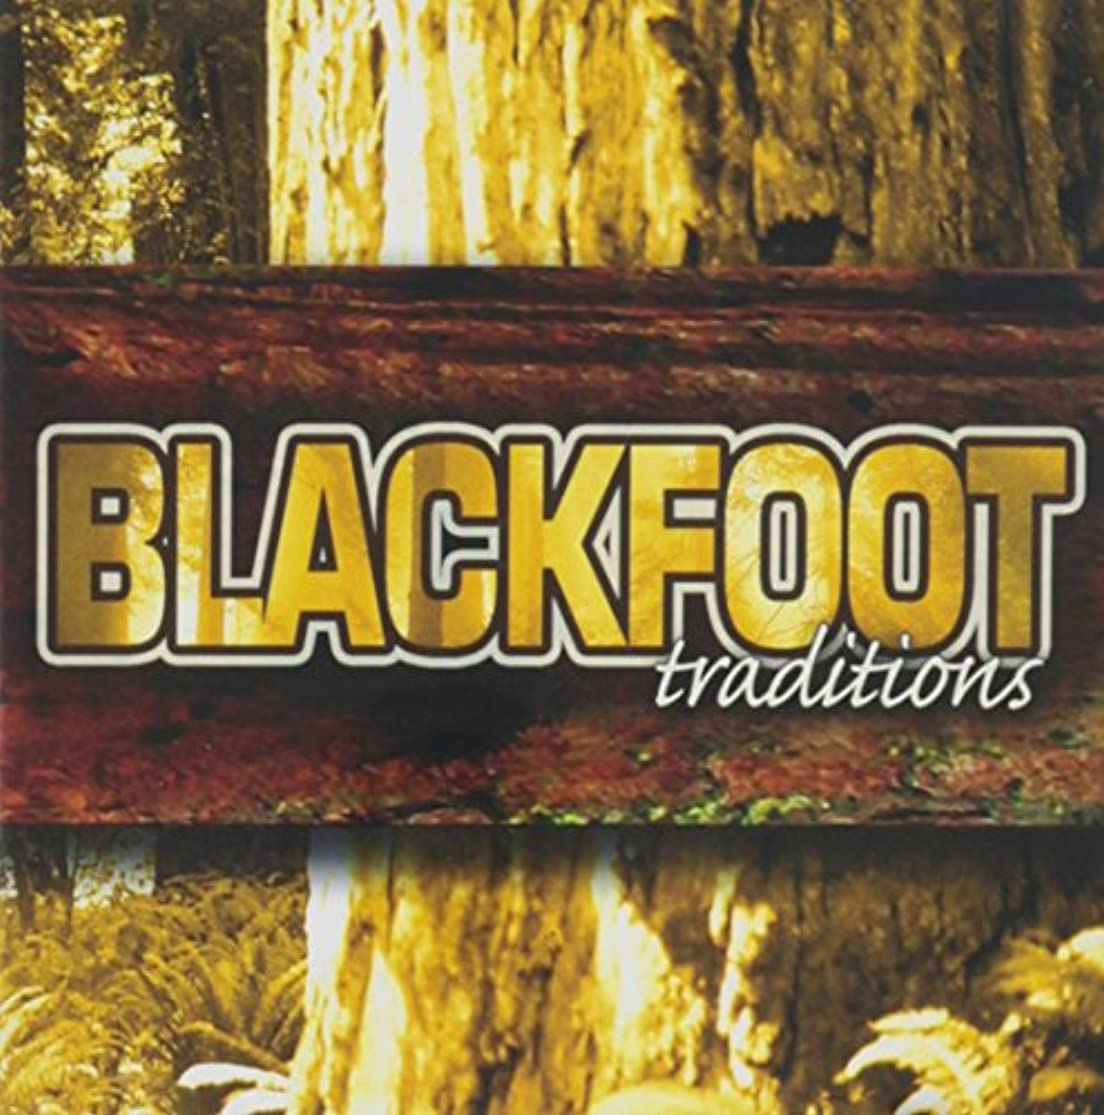 Blackfoot // Traditions pjxozzbz4